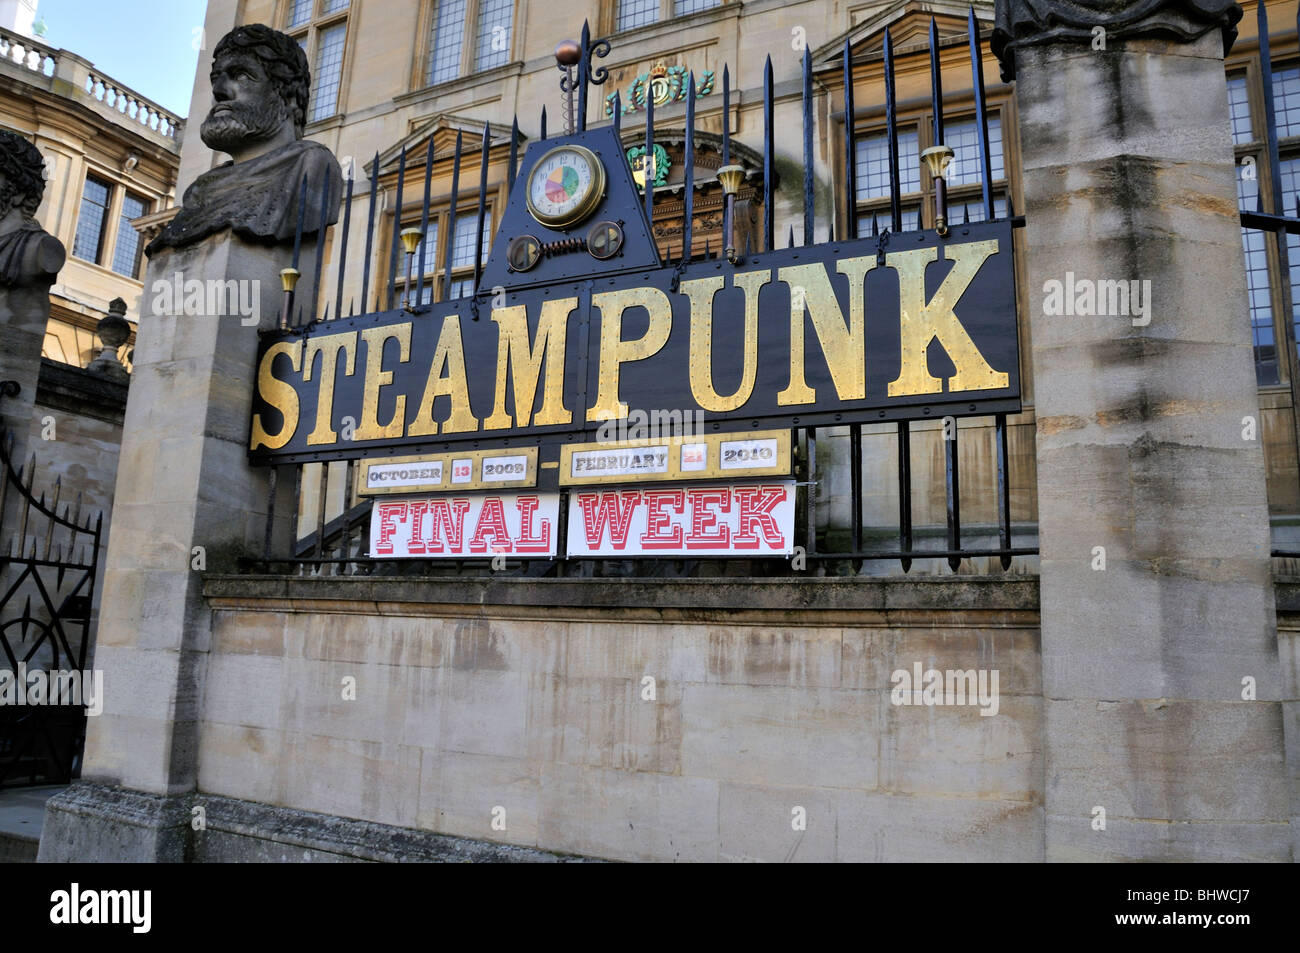 Steampunk Exhibition Signage outside the Museum of the History of Science, Oxford. - Stock Image